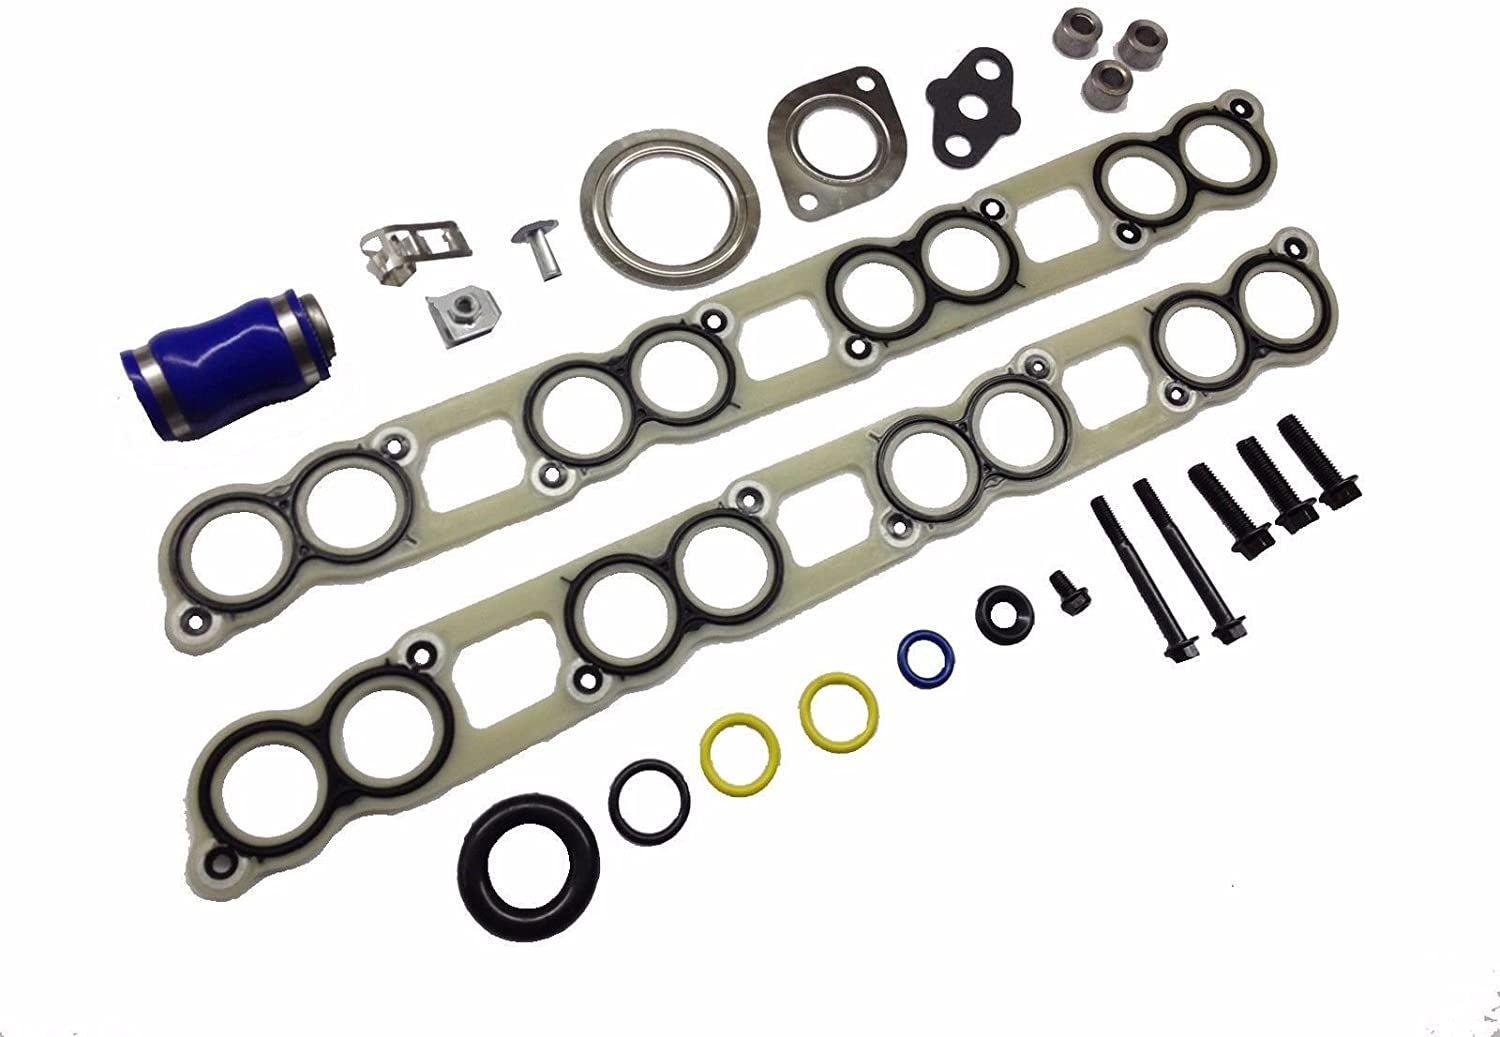 Engine Intake Manifold Gasket Set Fits For Ford 6.0L//6.4L 3C3Z 9439-AA